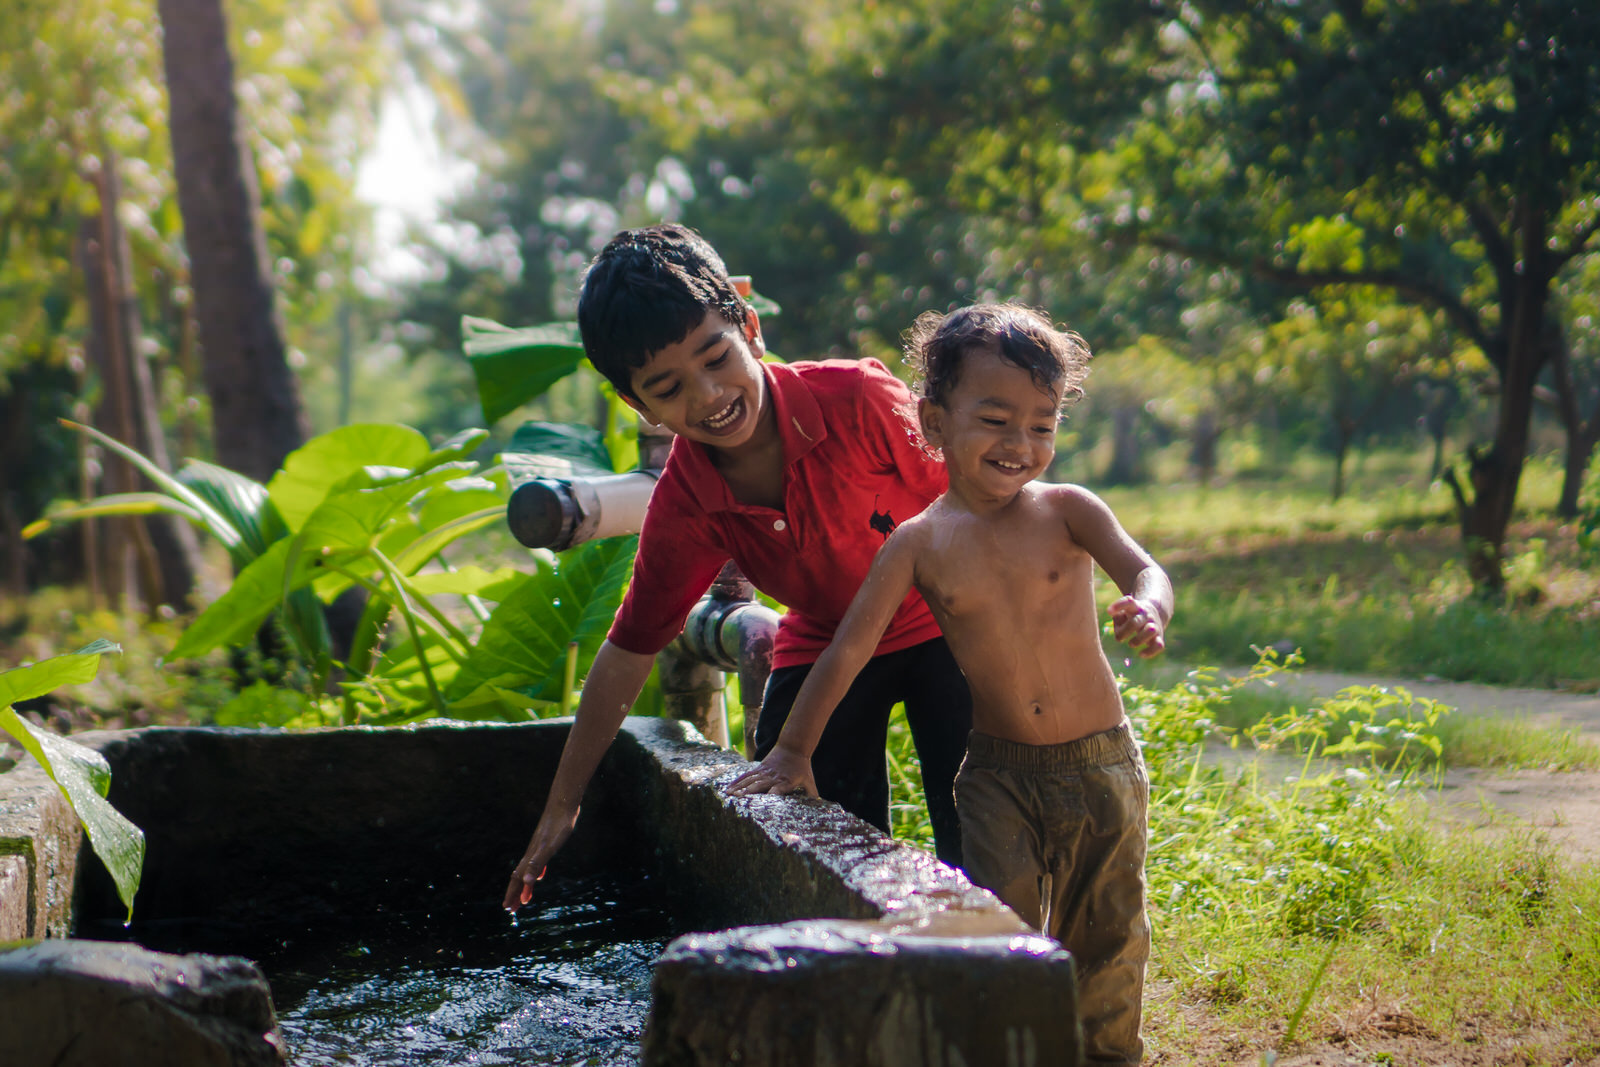 23122017-Boys-Playing-Water-Tank-345.jpg